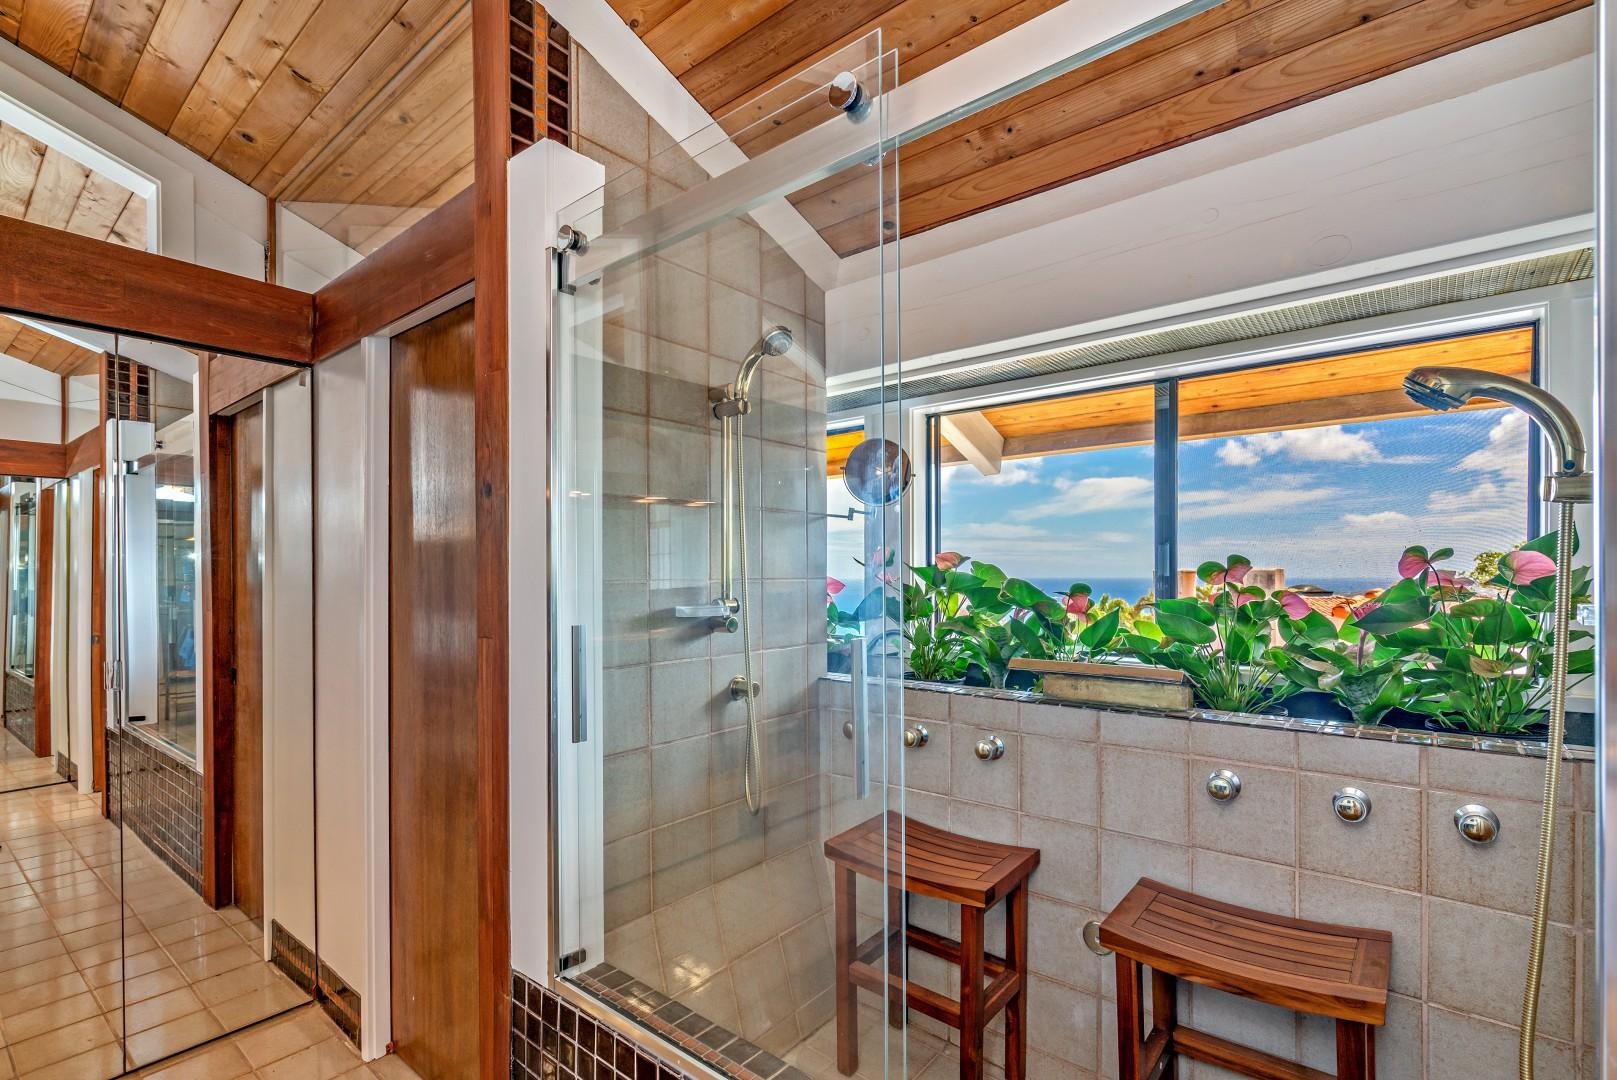 Step into a dual shower while enjoying the ocean view.